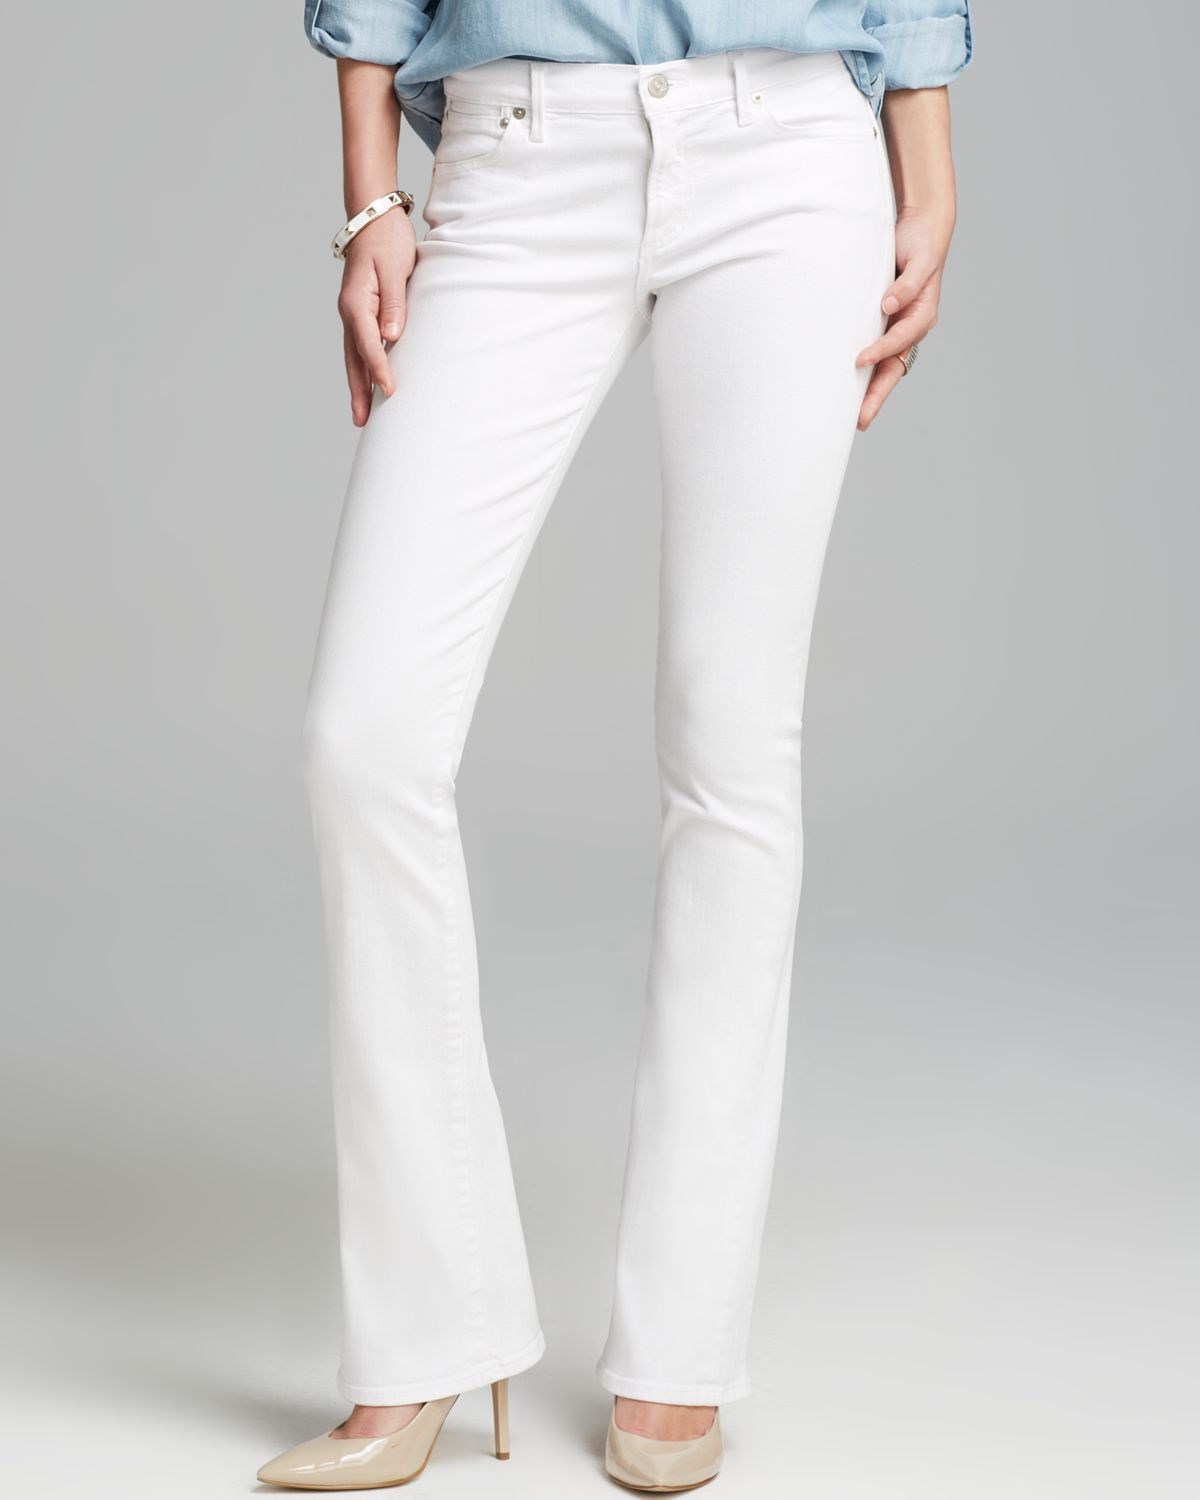 Buy New Womens White Bootcut Jeans at Macy's. Shop Online for the Latest Designer White Bootcut Jeans for Women at hereuloadu5.ga FREE SHIPPING AVAILABLE!